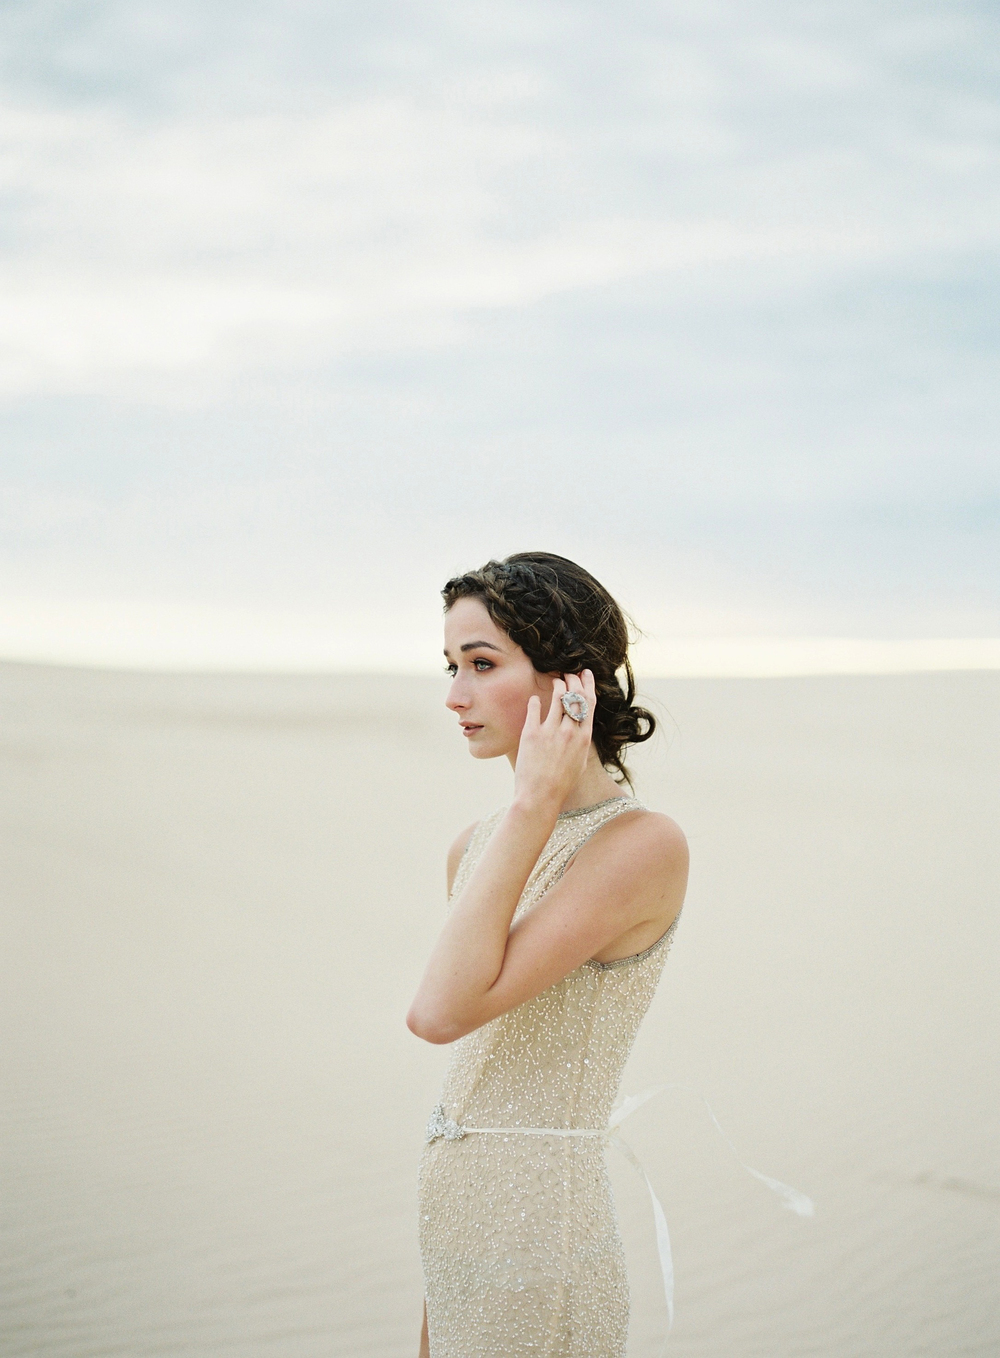 Kyle John l Fine Art Wedding Photography l Chicago, Copenhagen, California, New York, Destination l Blog l Millicent_4